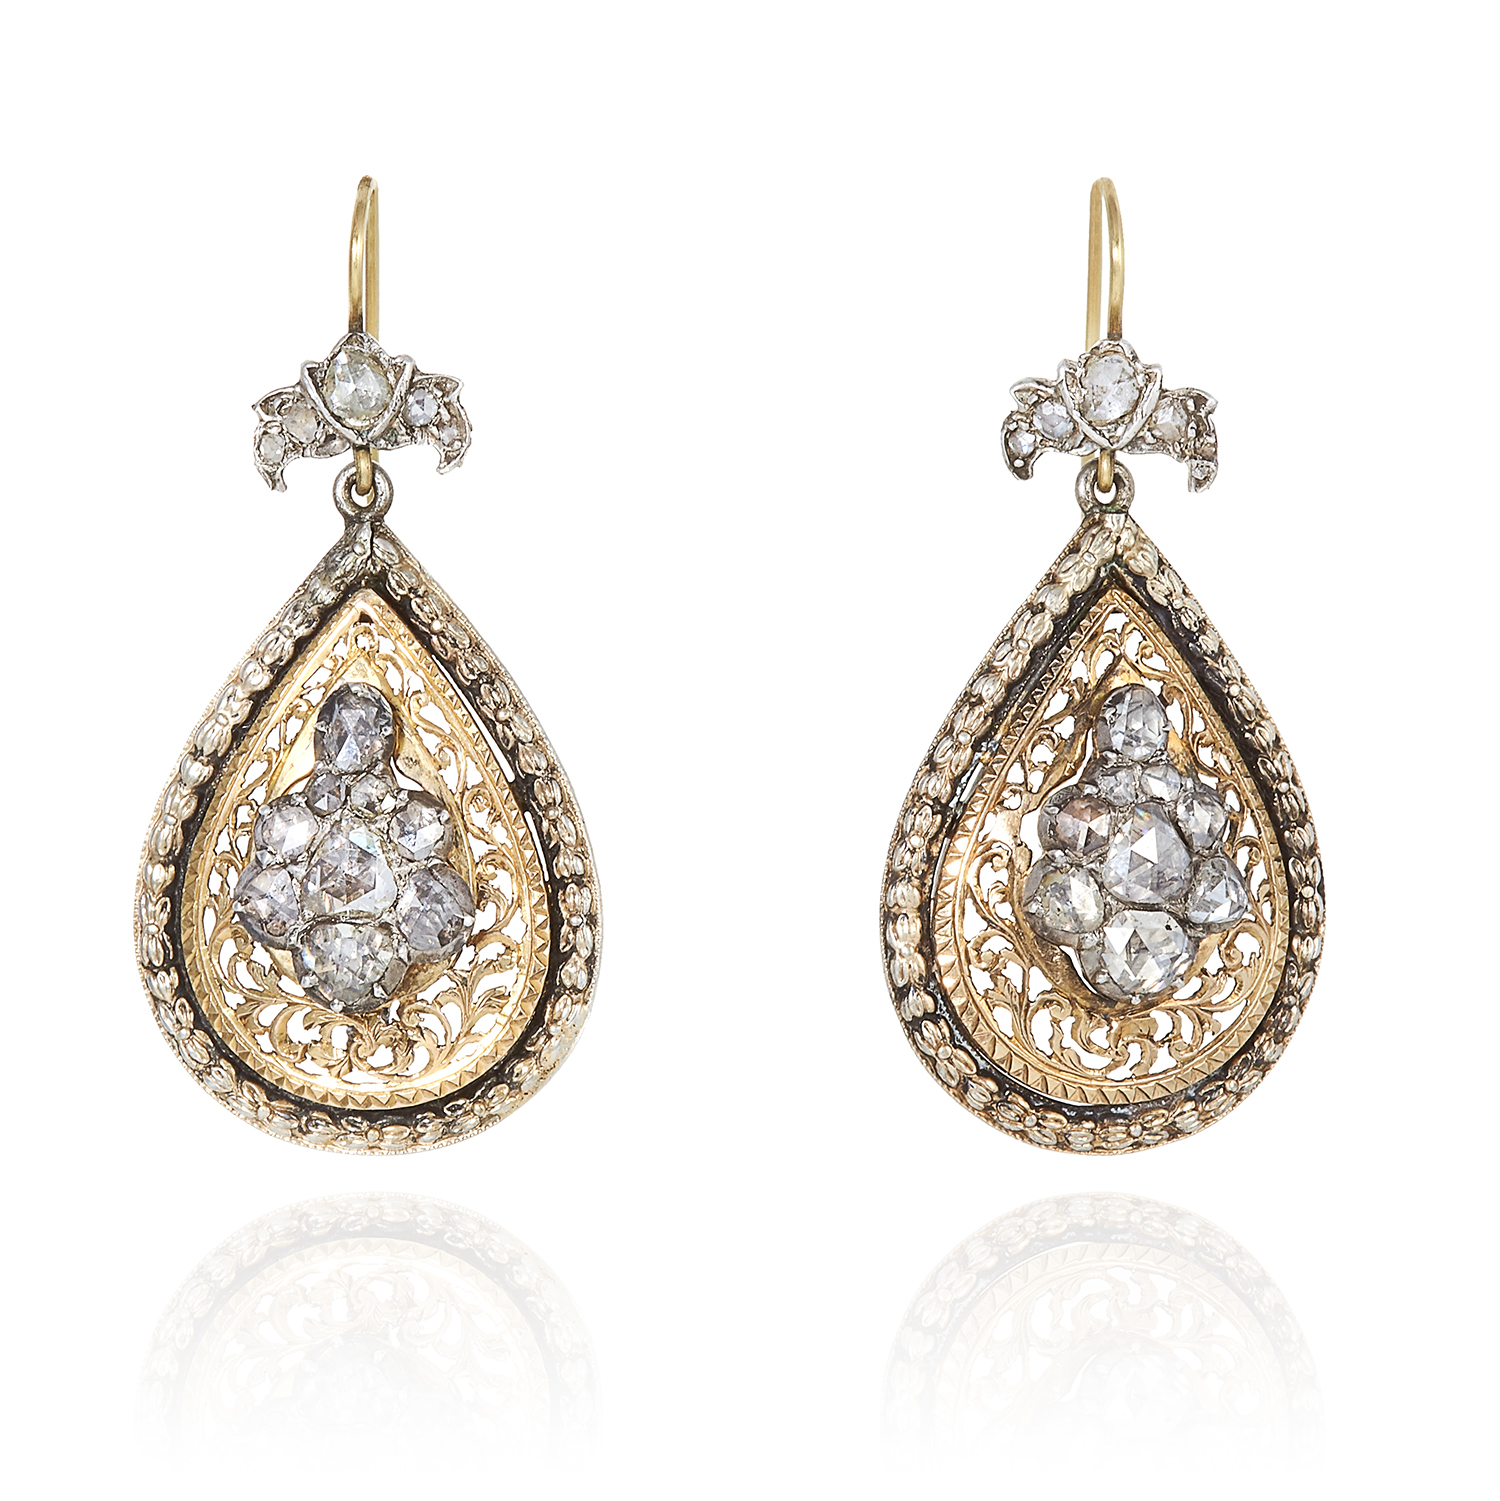 Los 14 - A PAIR OF DIAMOND EARRINGS in high carat yellow gold and silver, each set with a cluster of rose cut